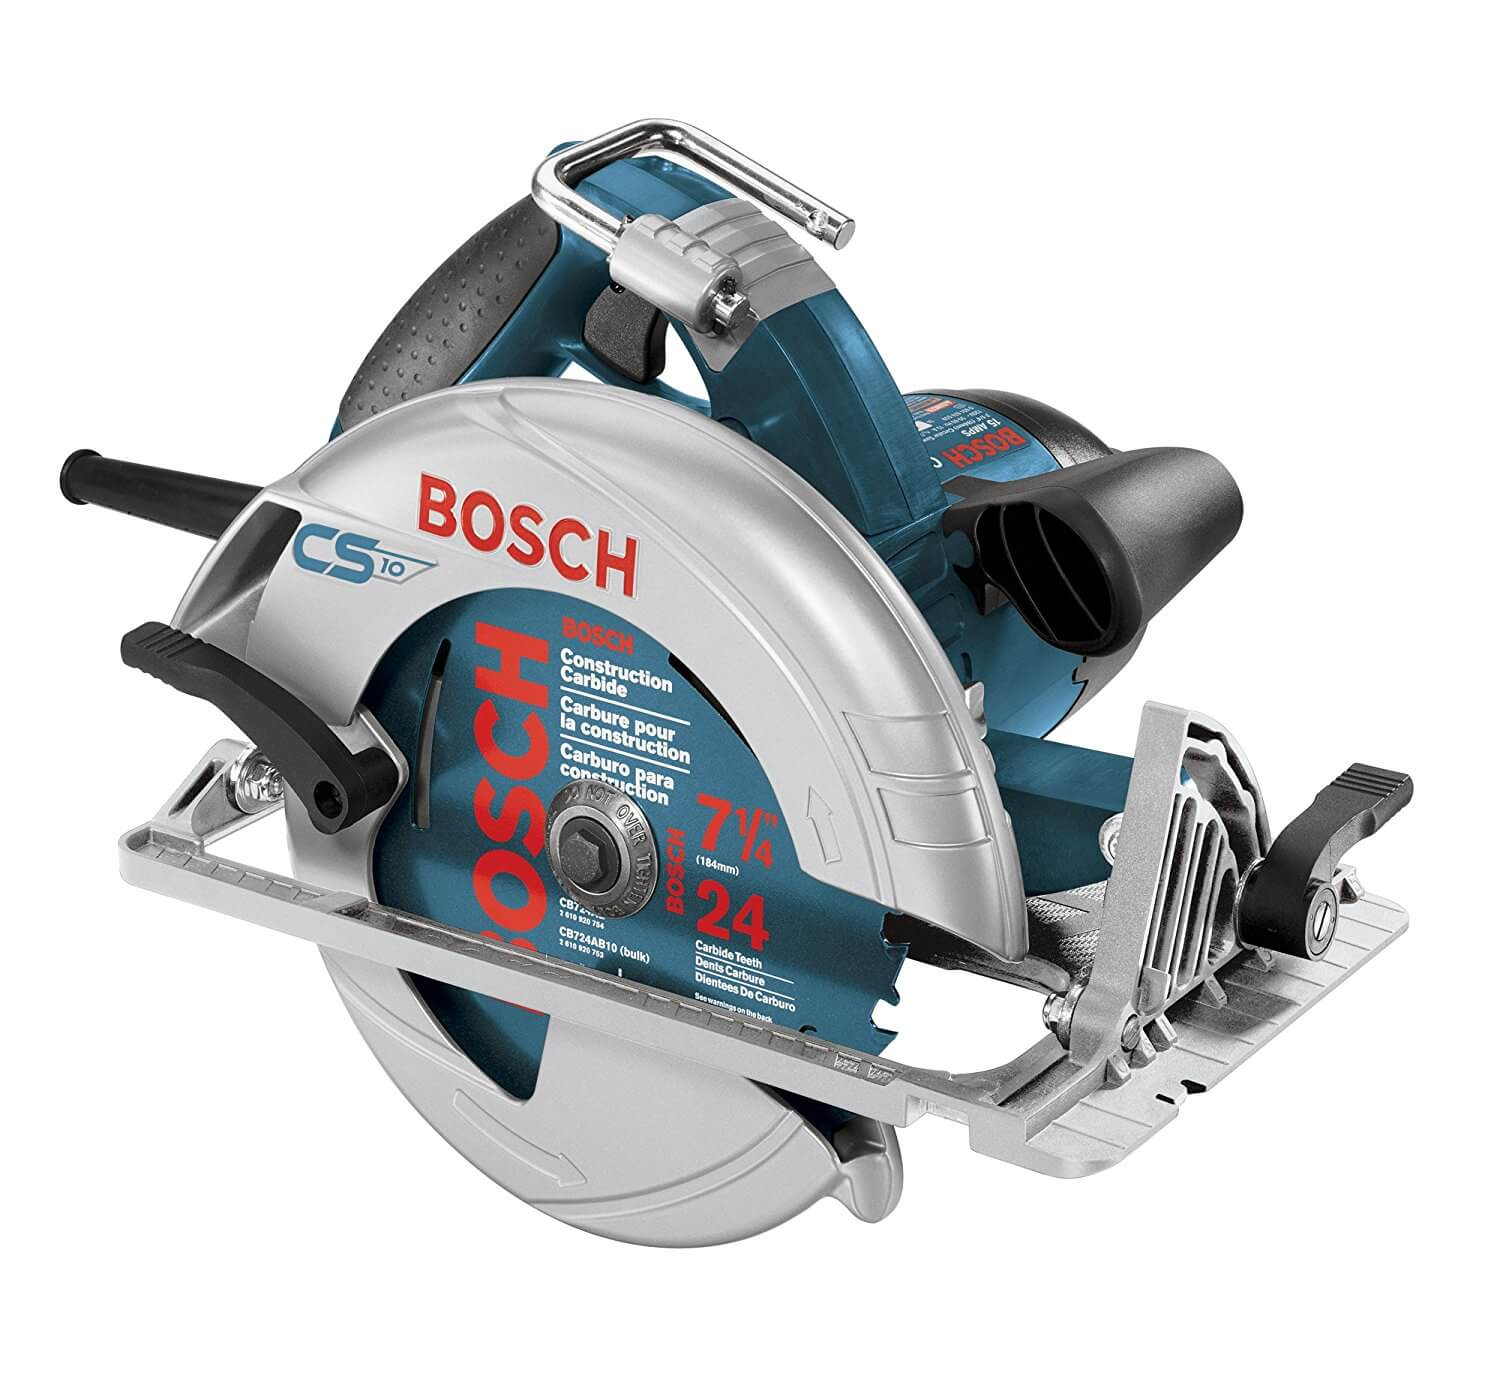 Best 7 25 Inch Circular Saws In 2017 For Timber Framing